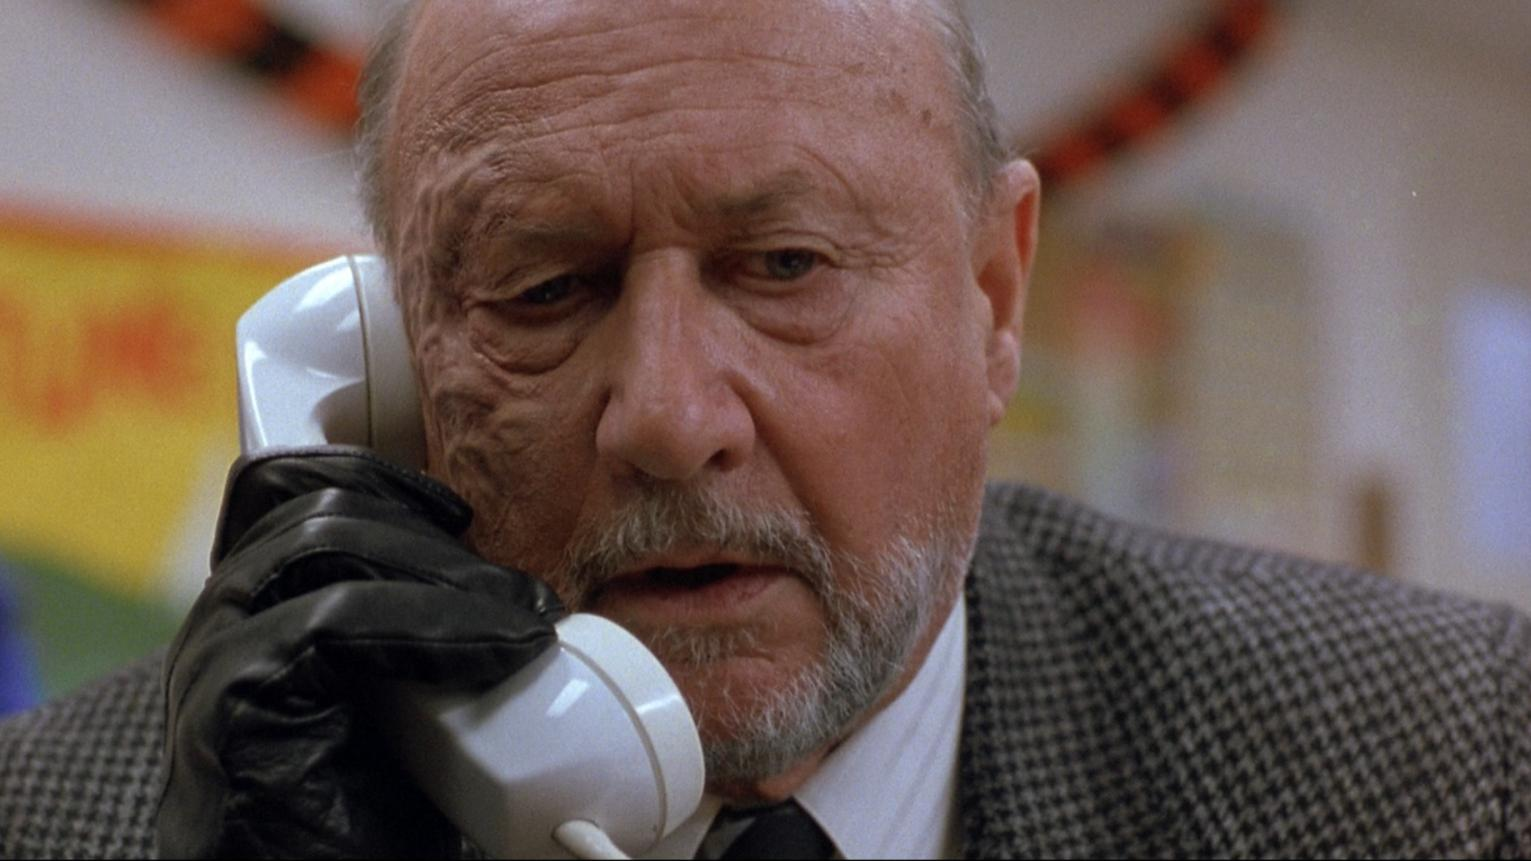 Dr Loomis (Donald Pleasence) still pursuing Michael Myers in Halloween 5 (1989)